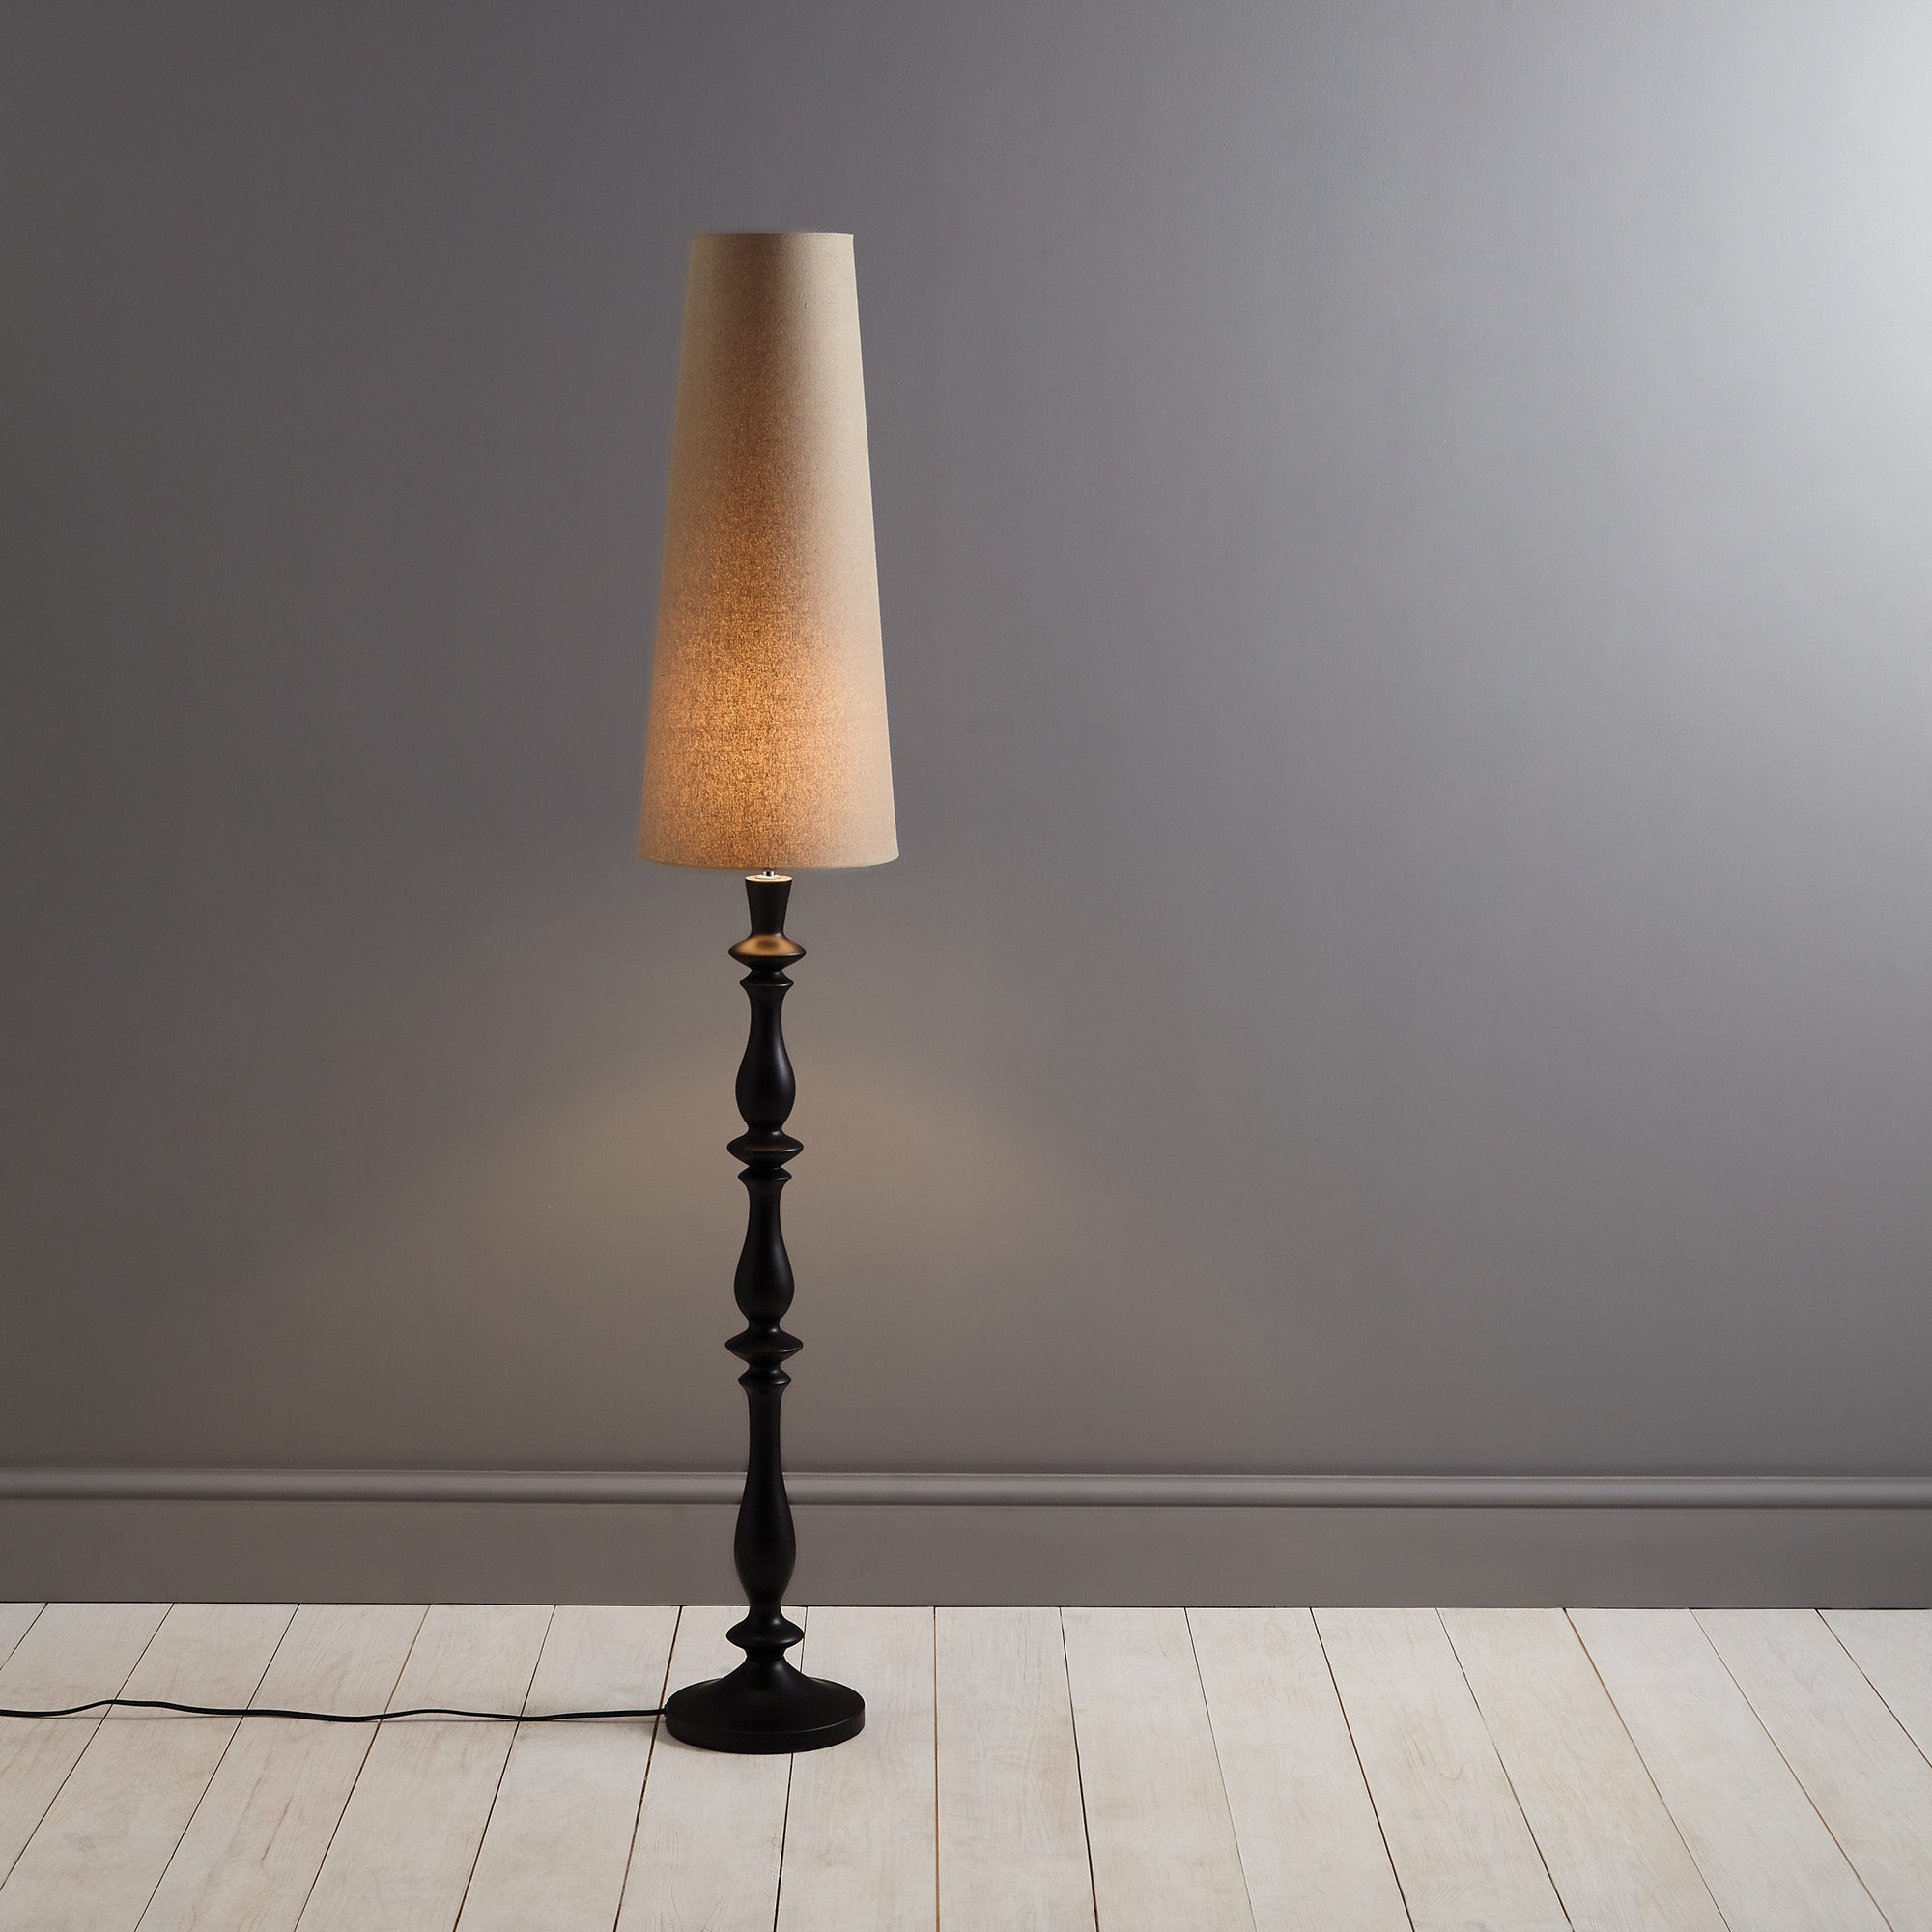 Turned Wooden Floor Lamp